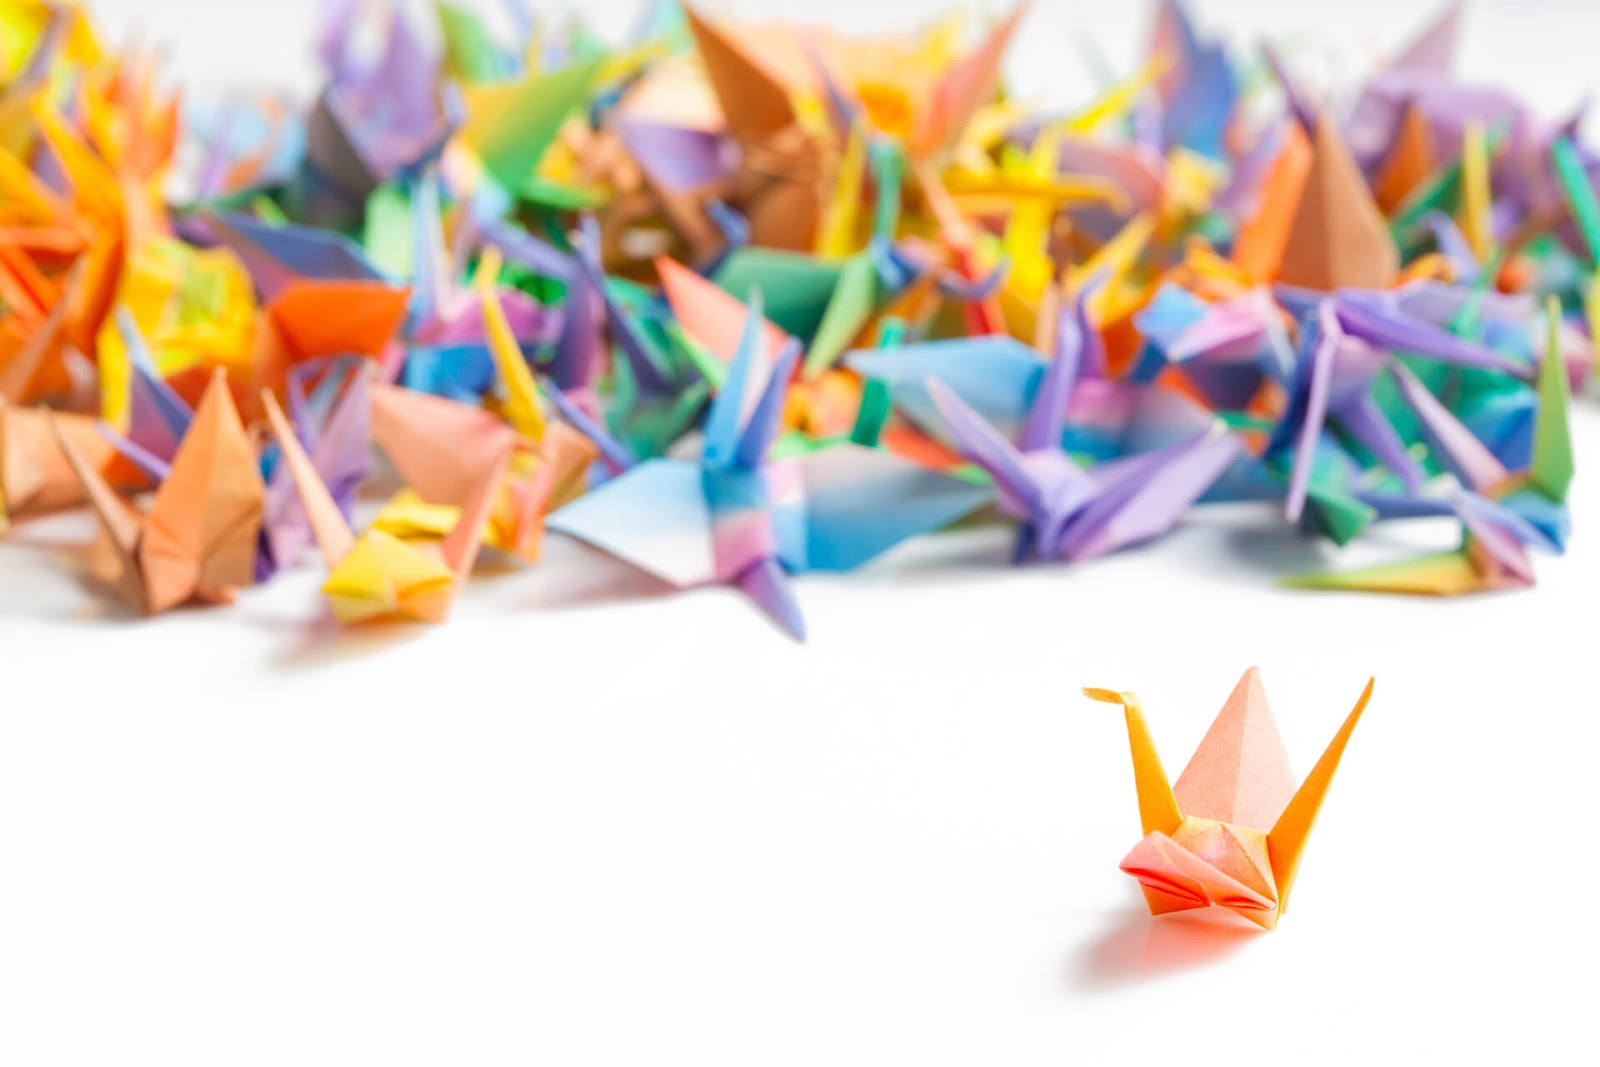 A whole bunch of colorful origami swans